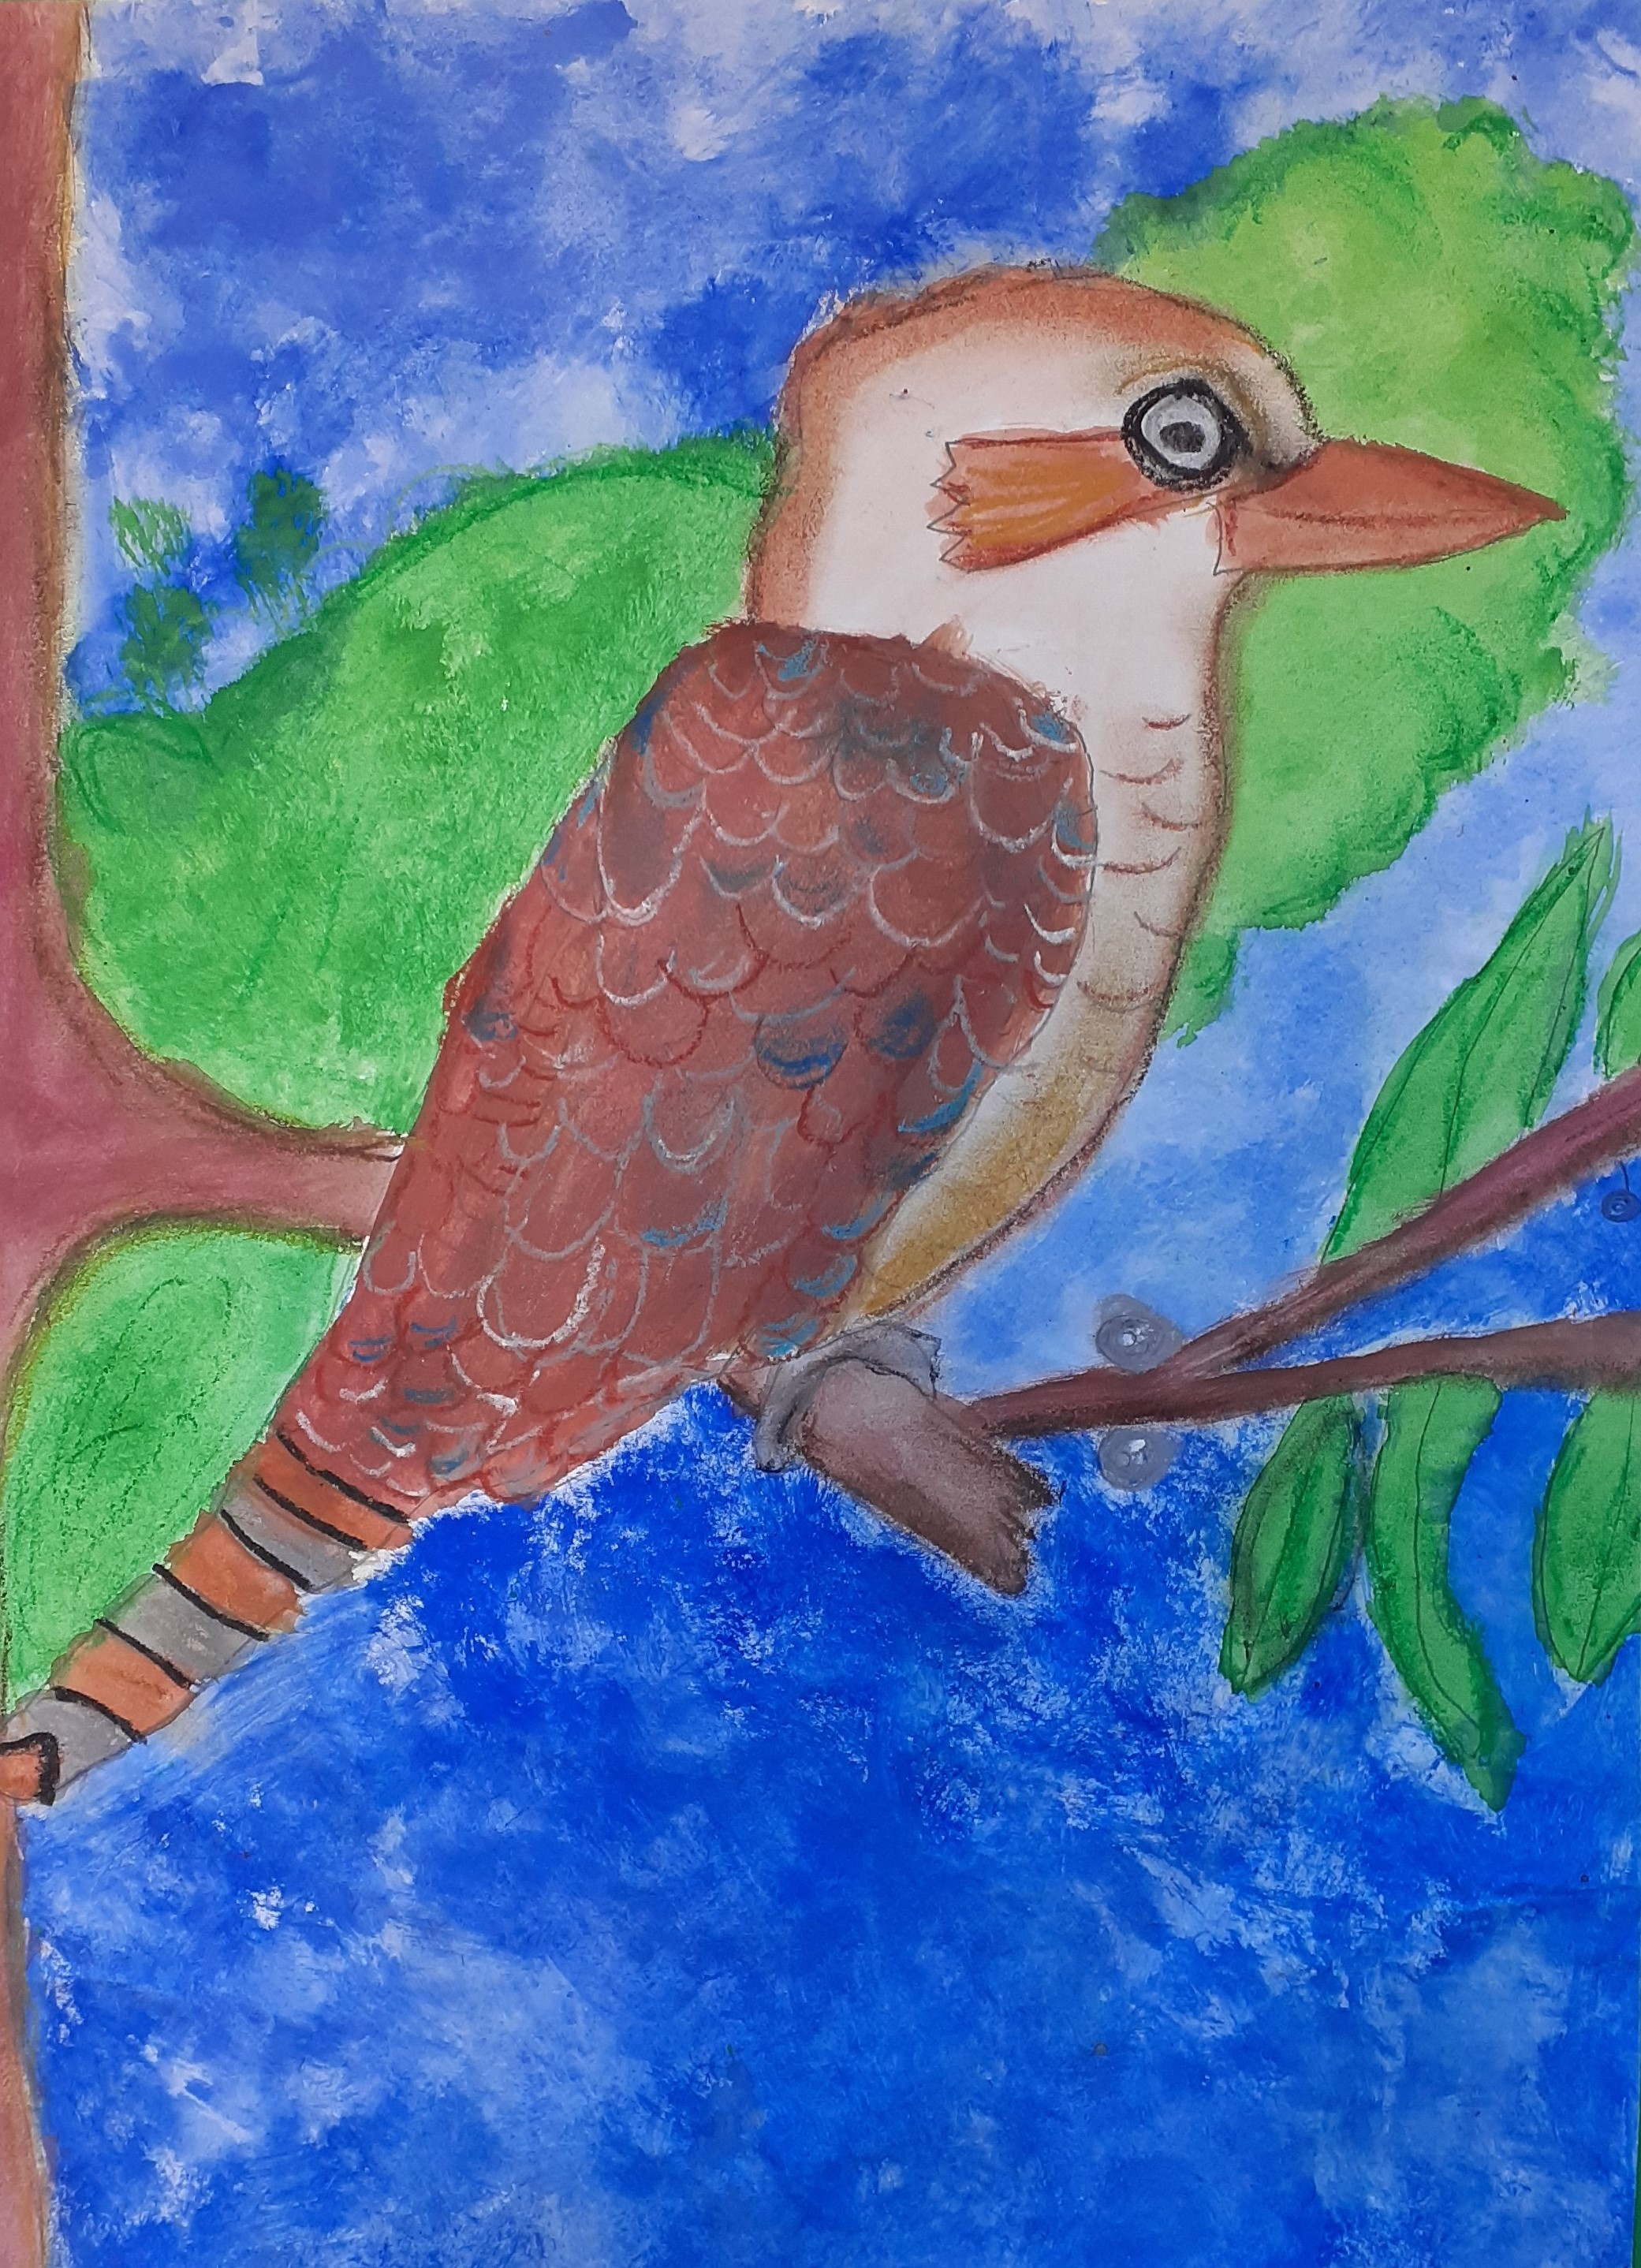 Nagoya Art Exchange – 02 – Ruby Ryan – The Kookaburra